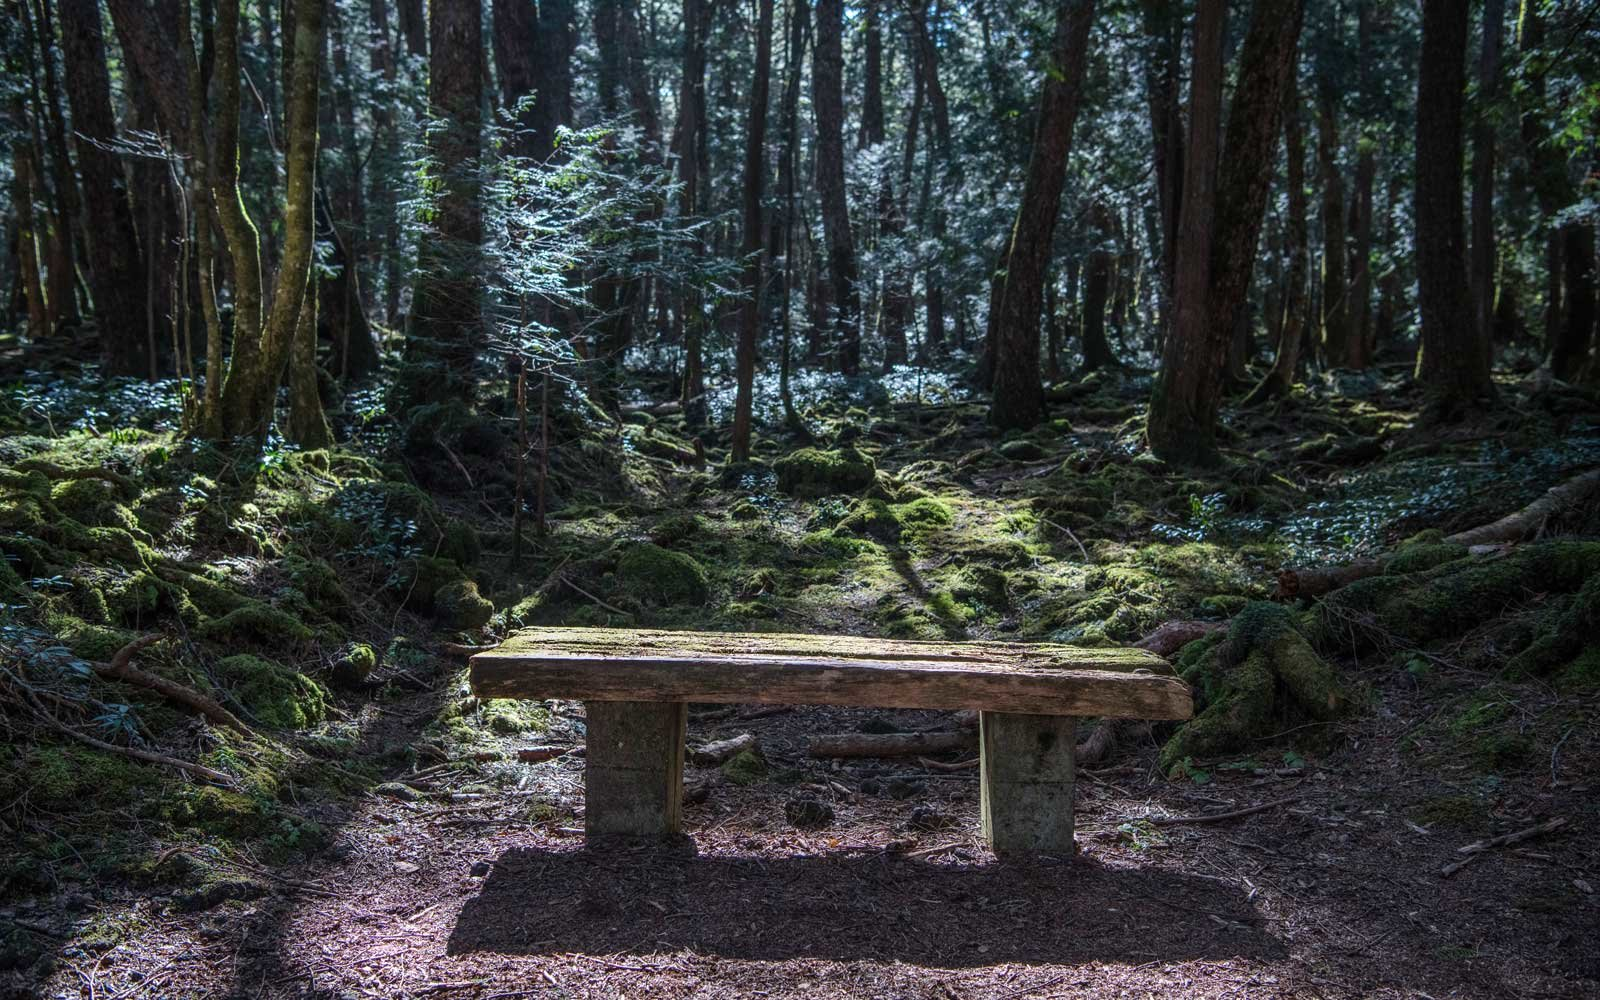 Light falls on a moss-covered bench in Aokigahara forest in Fujikawaguchiko, Japan.